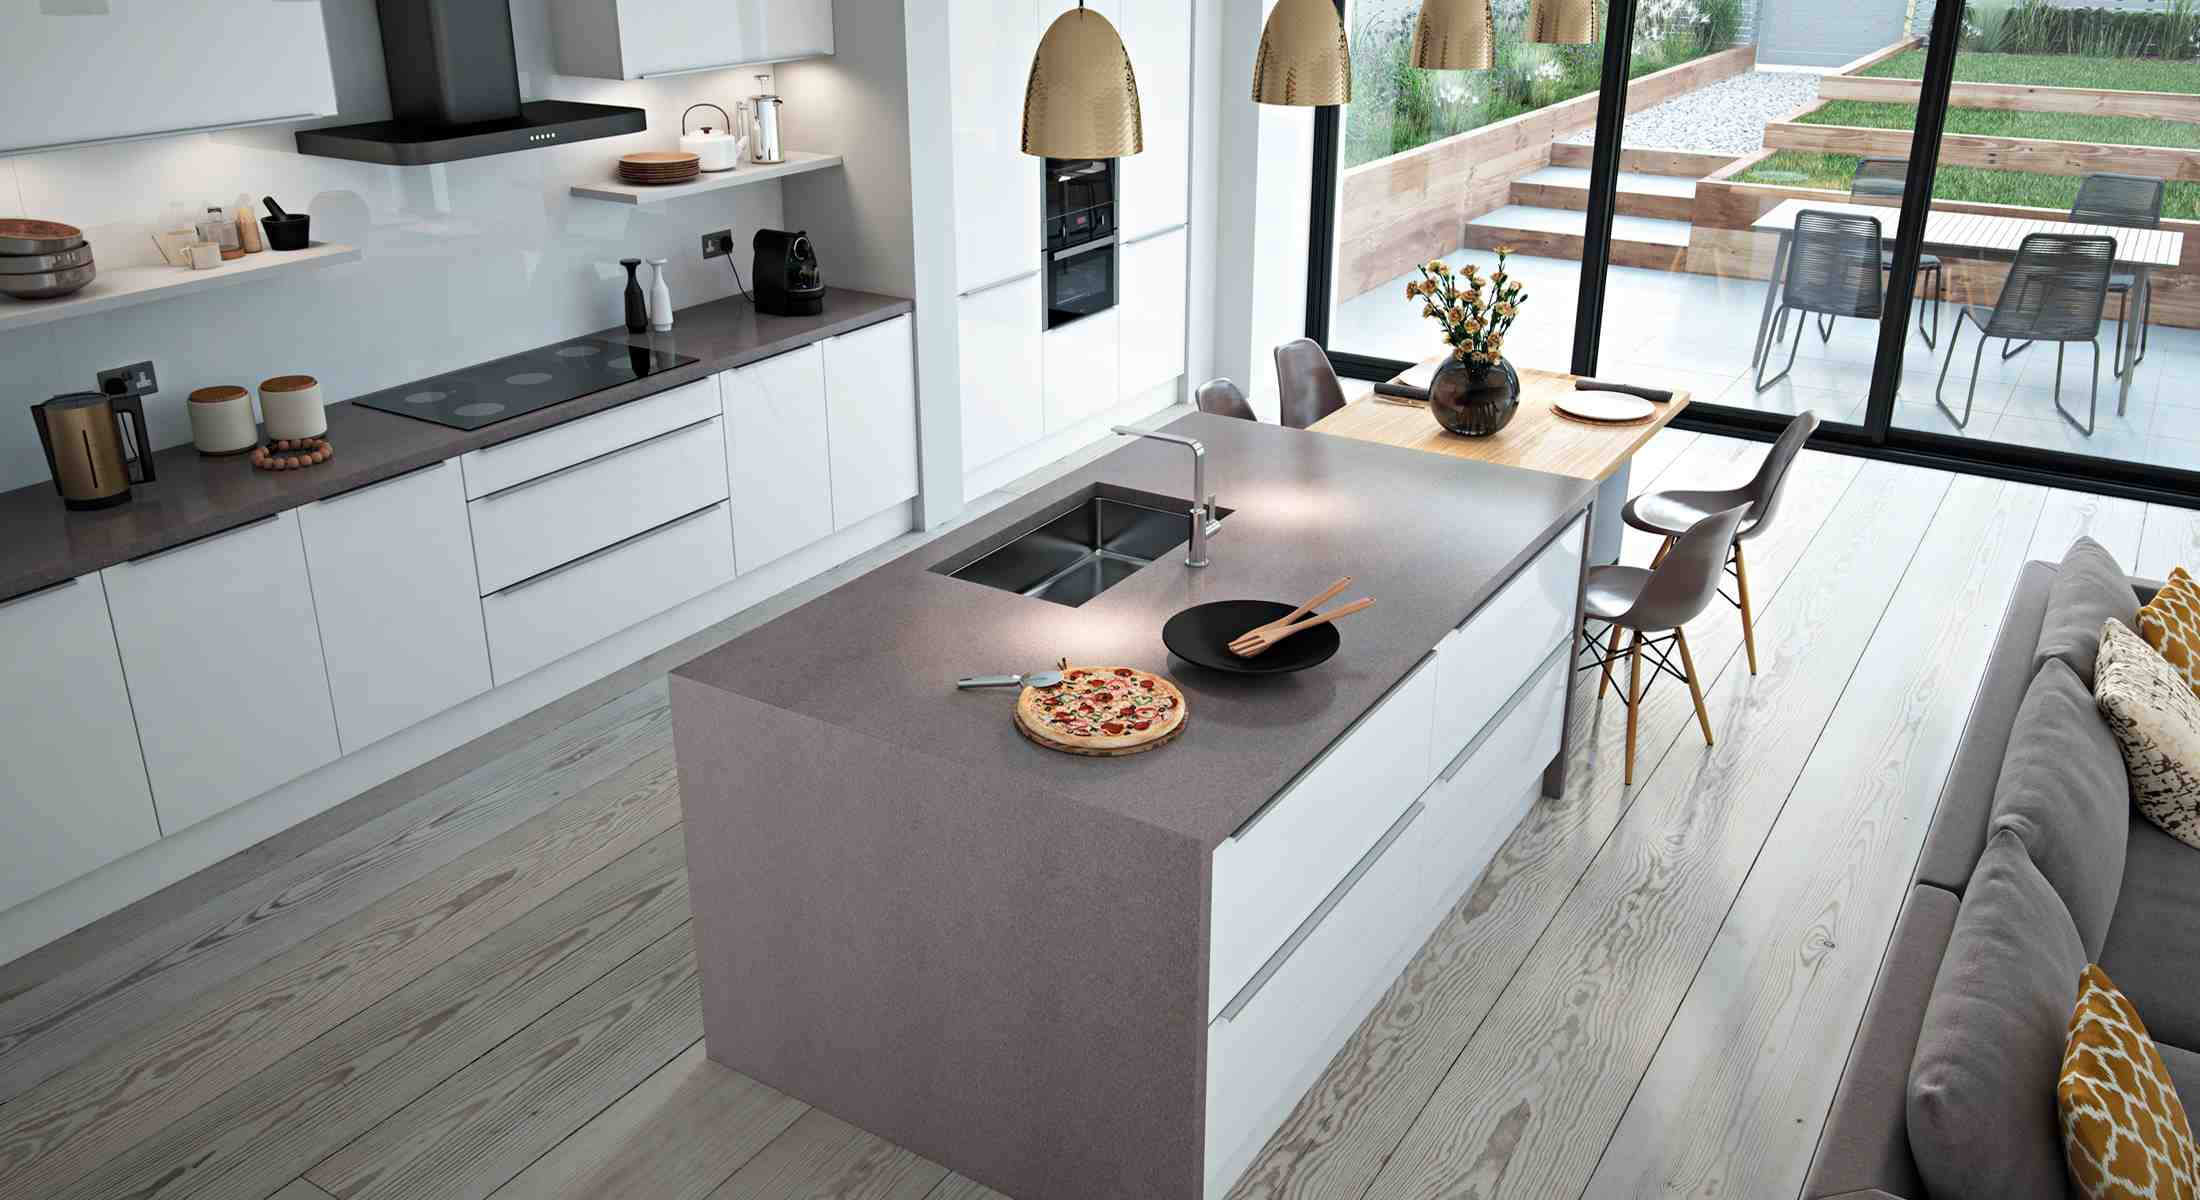 vassa gloss offering a selection of gloss flat slab, cut and edged doors at an affordable price.